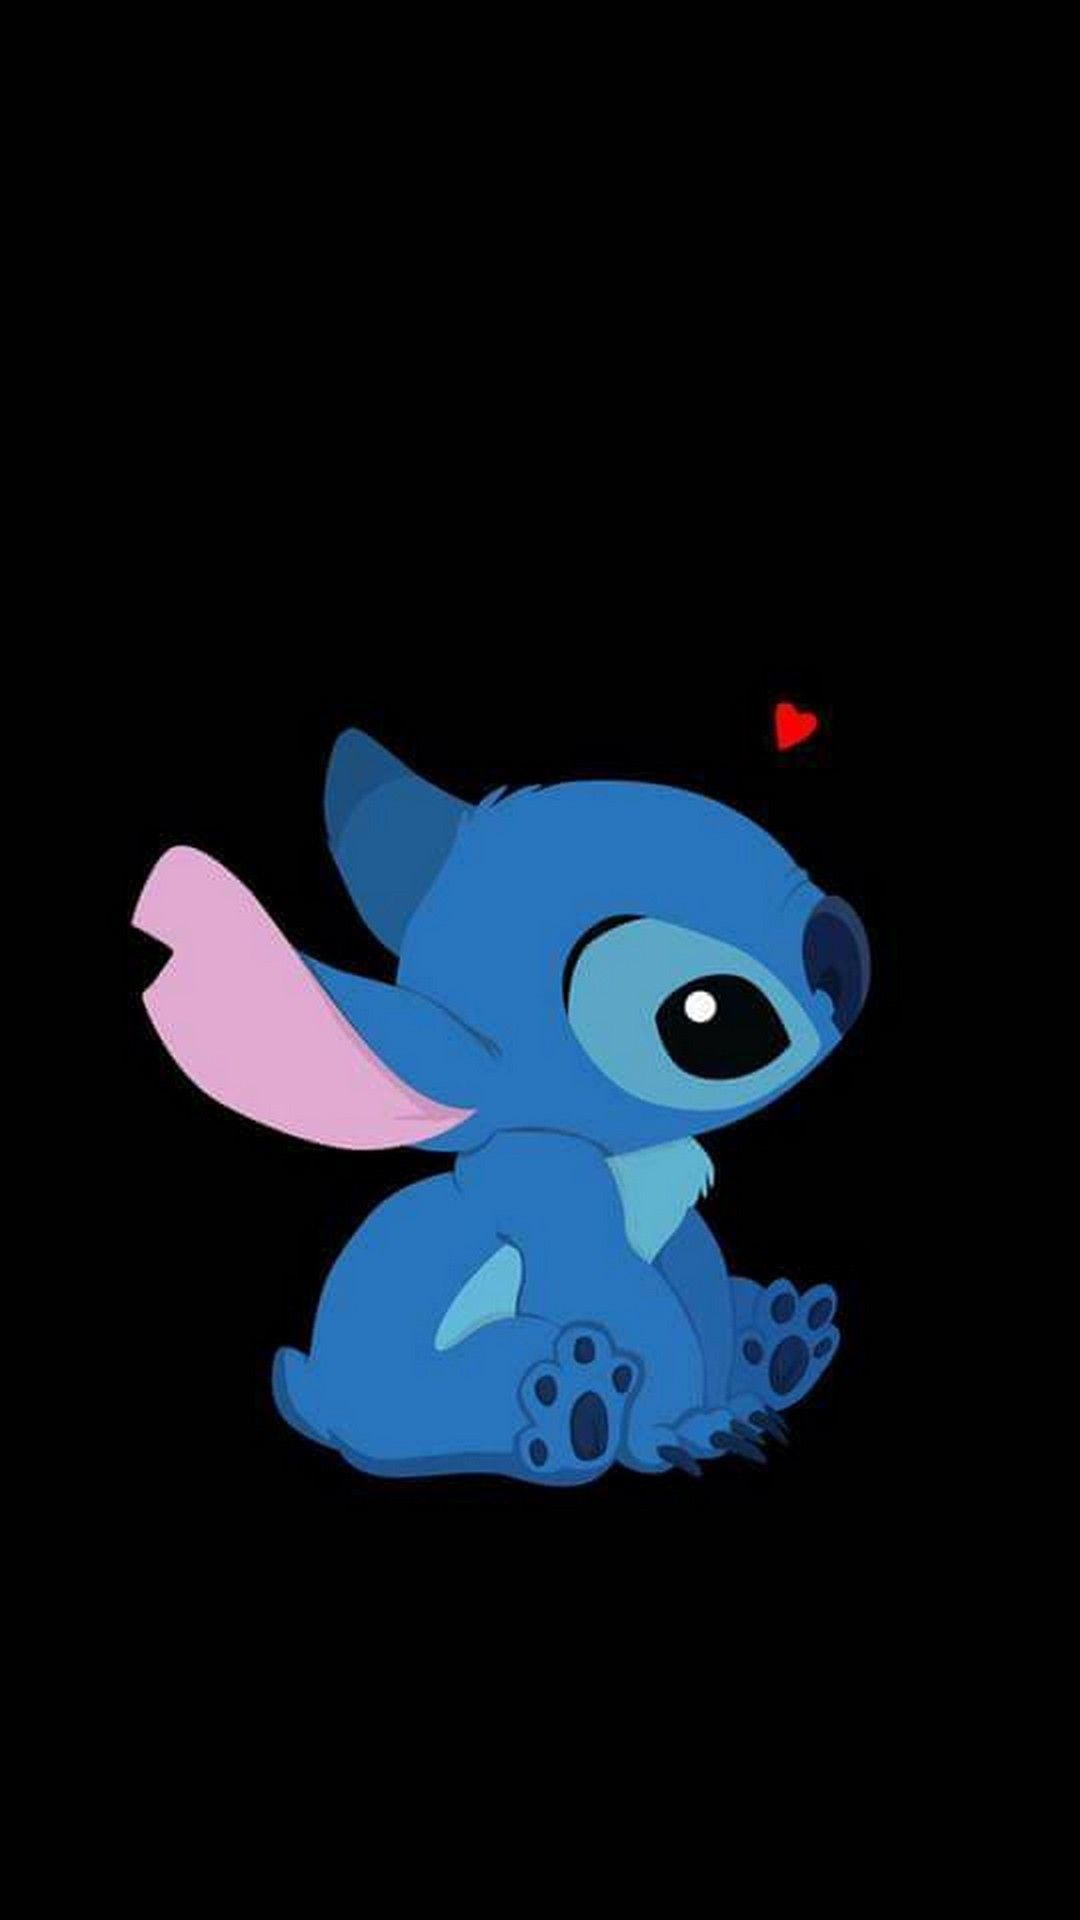 Cute Lilo and Stitch Wallpapers - Top gratis Cute Lilo and Stitch